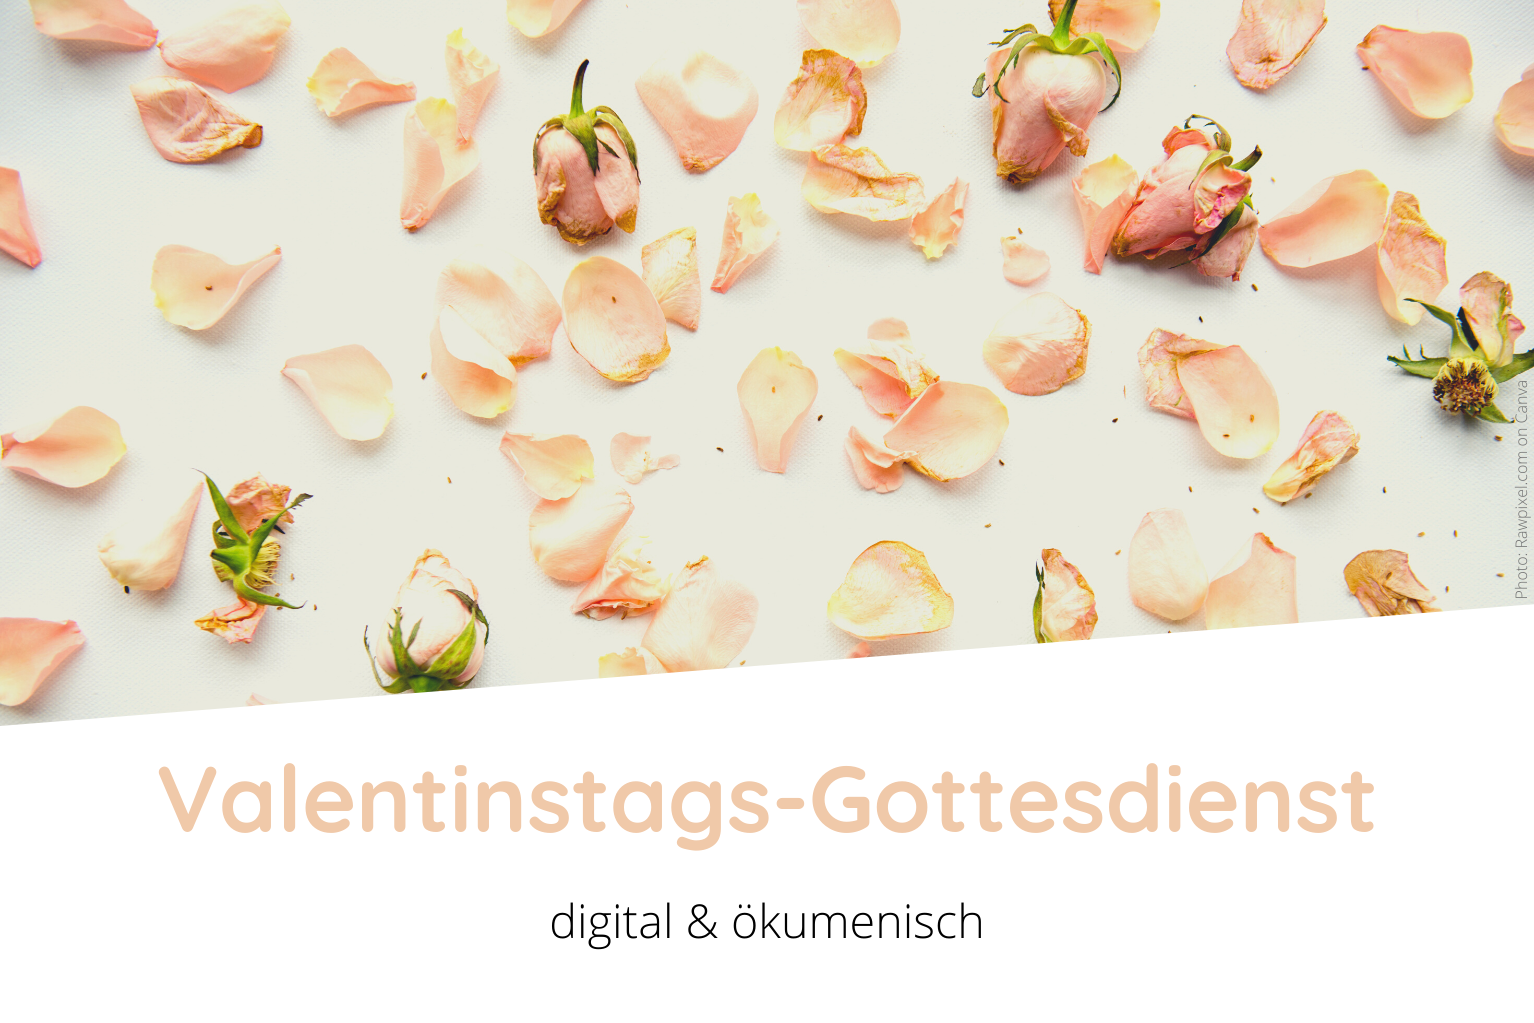 Valentinstags-Gottesdienst, © Rawpixel.com on Canva